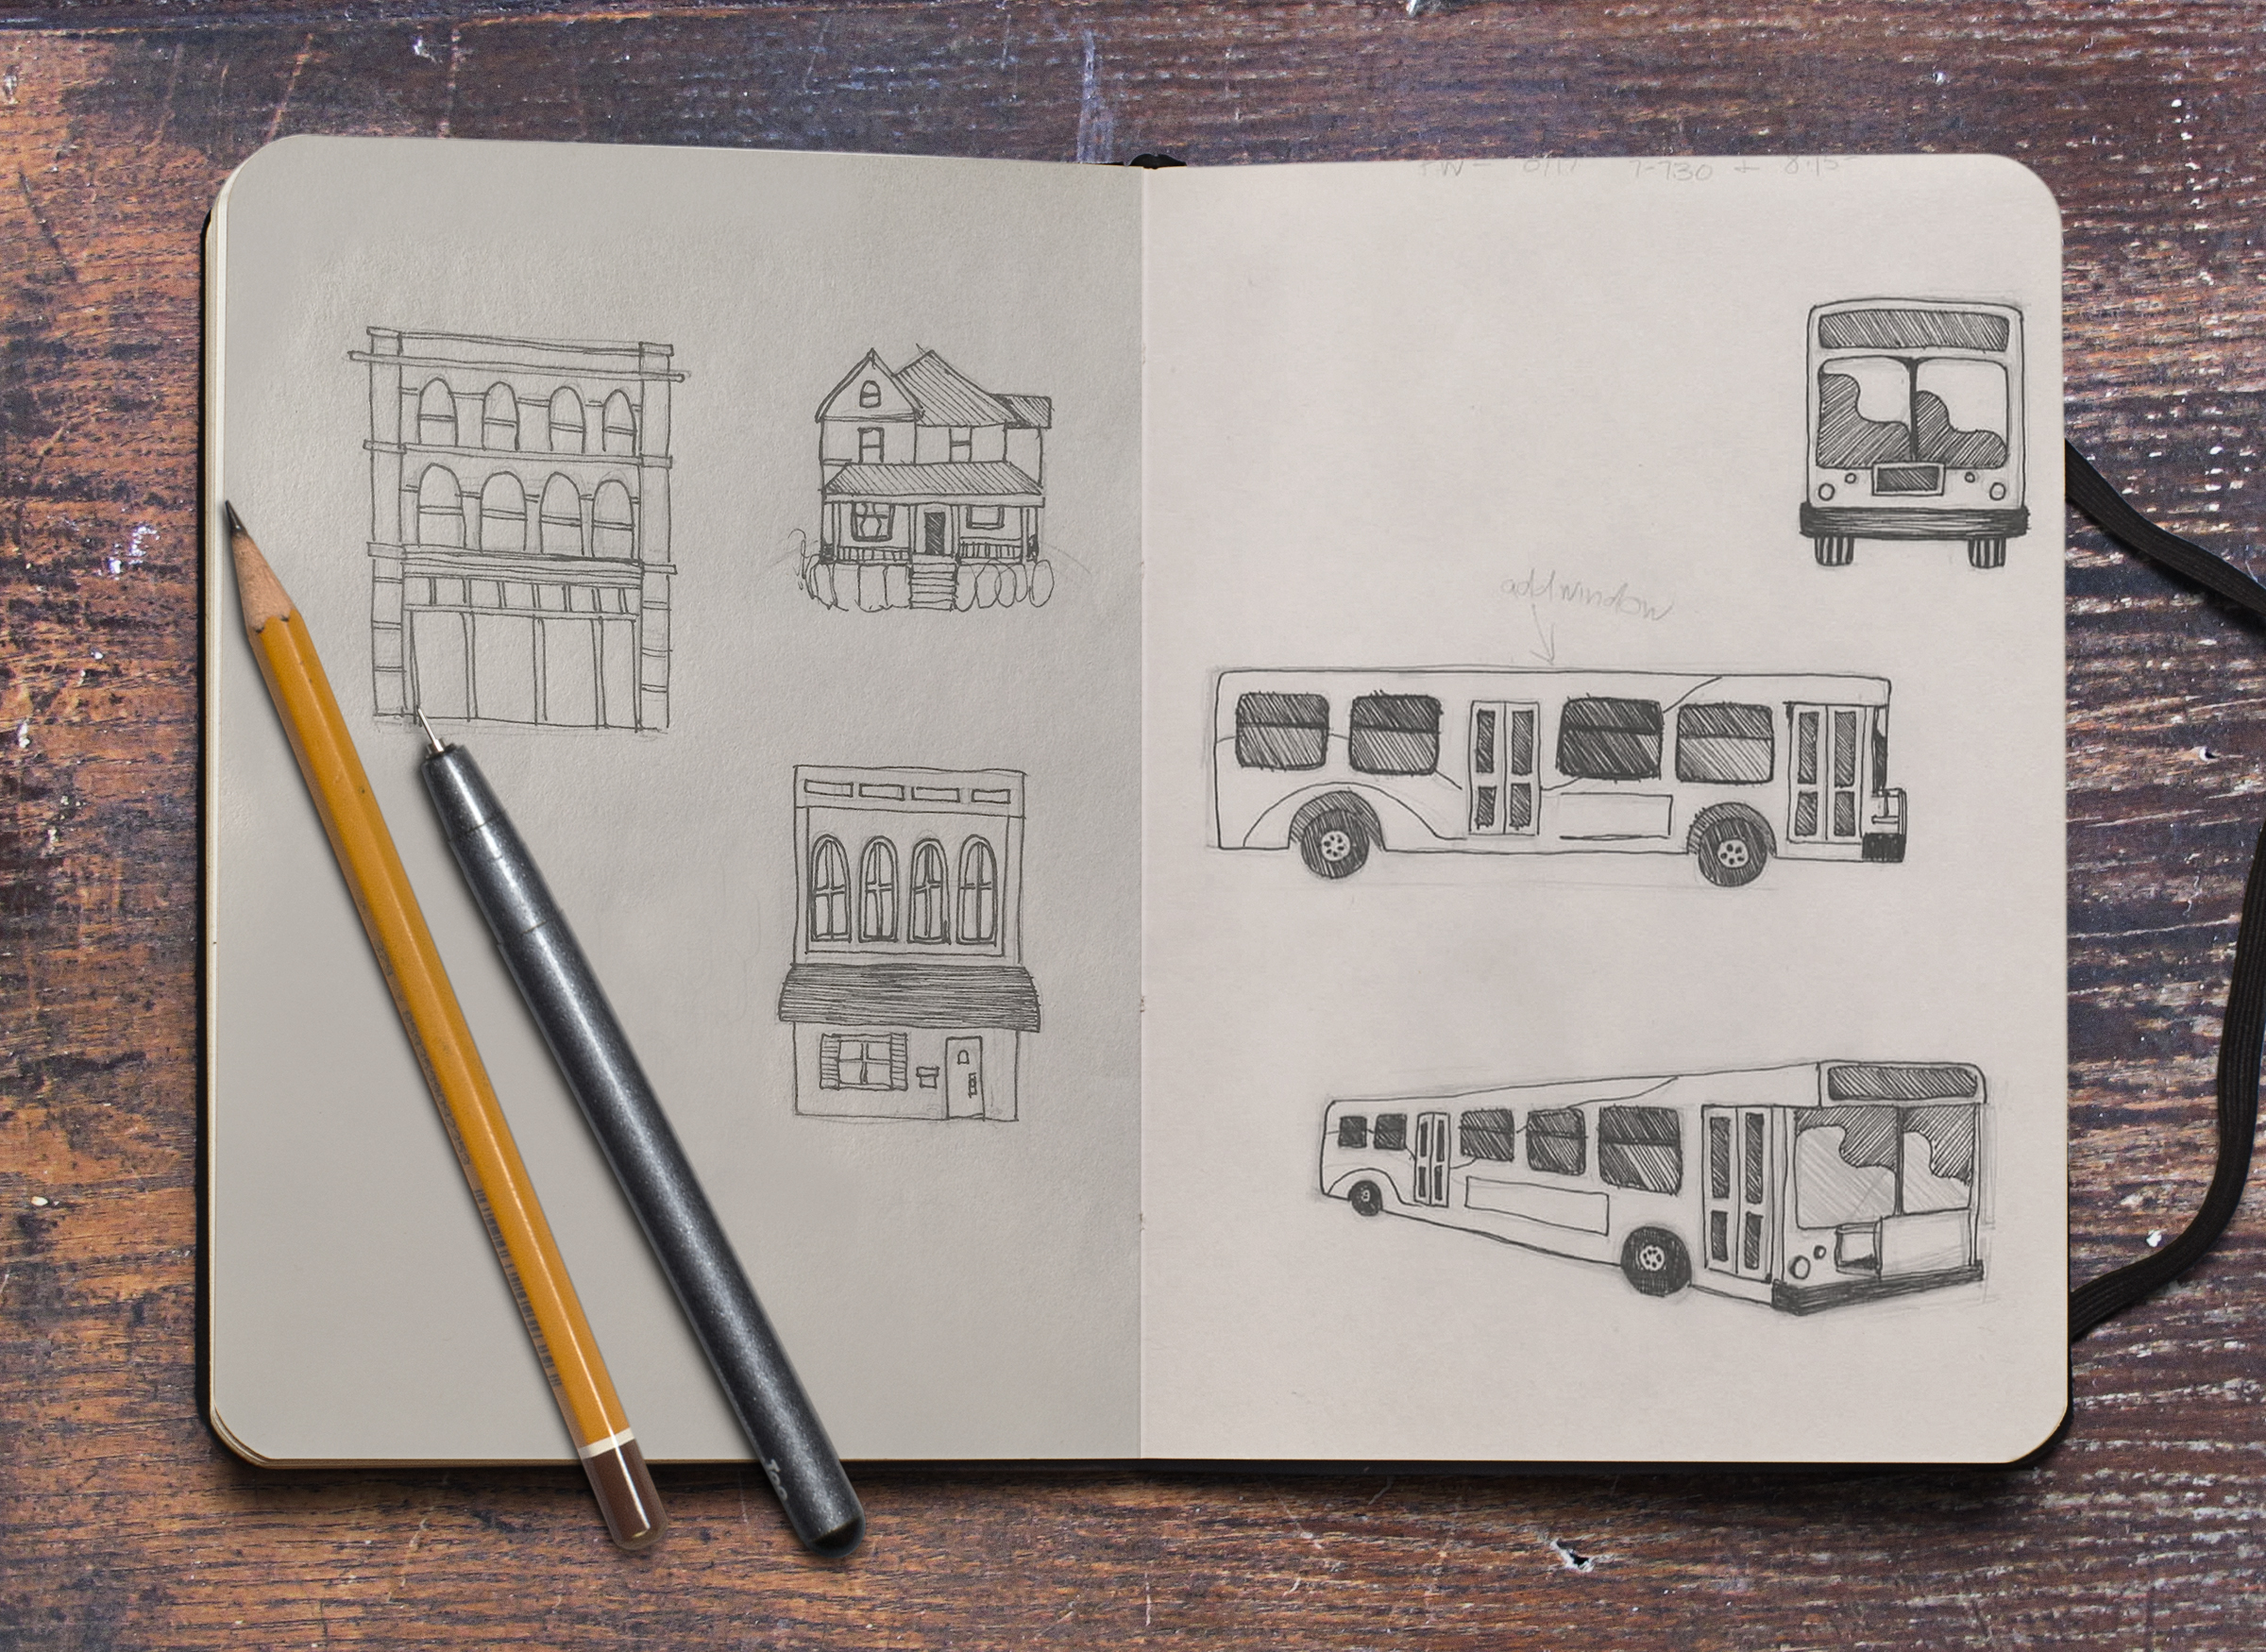 bus and building sketches